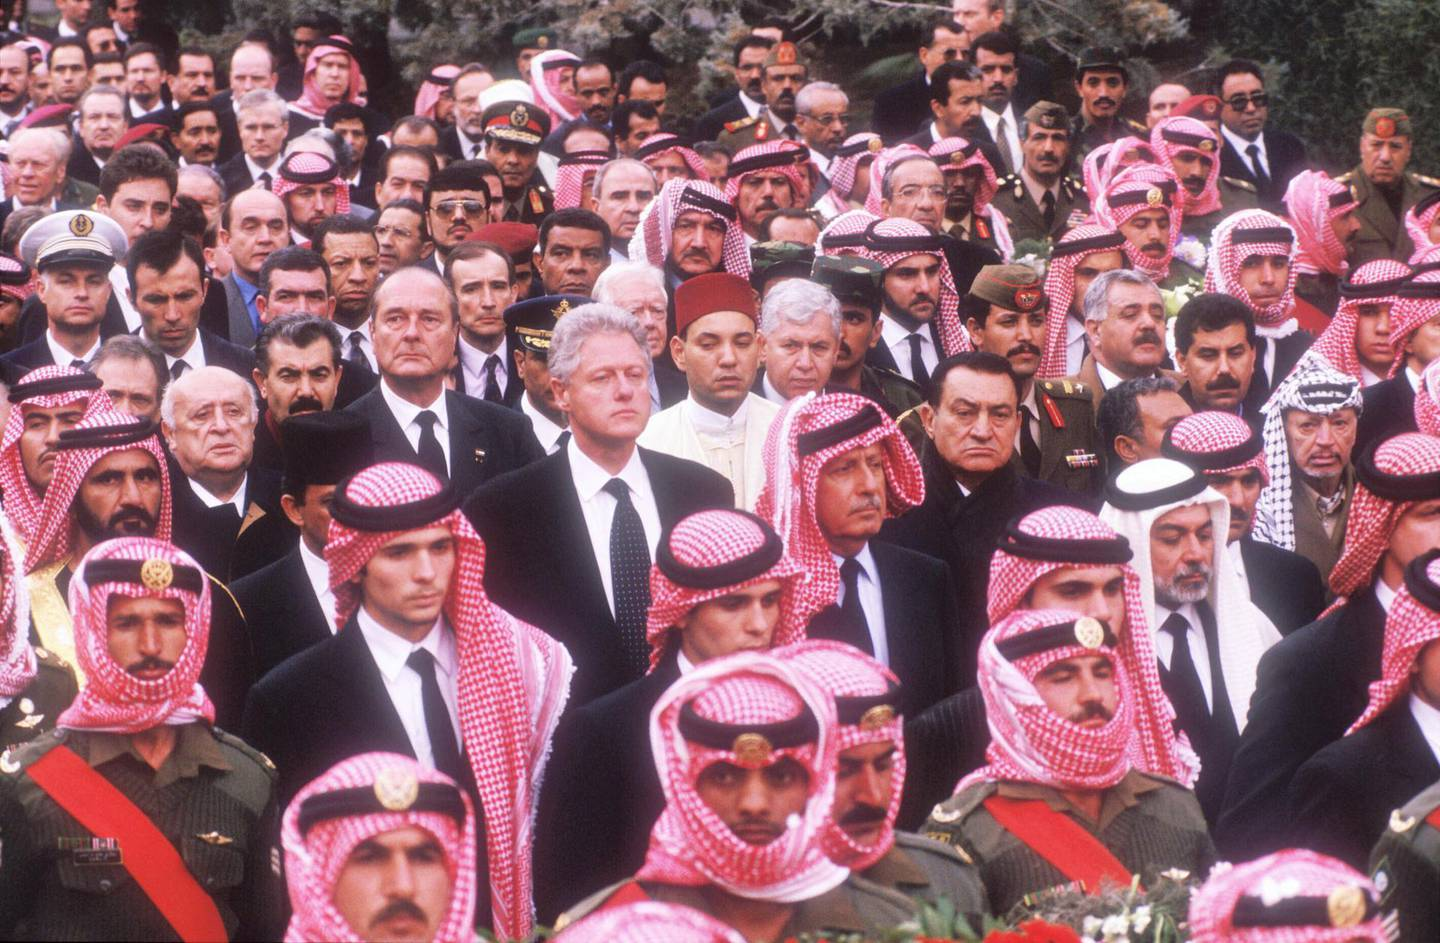 346480 12: President Clinton joins the funeral procession of King Hussein February 8, 1999 in Amman, Jordan. There were more than 40 kings, presidents, prime ministers, and other leaders, and an estimated 800,000 Jordanians arriving to pay their respects to the Middle East peace leader. (Photo by Scott Peterson/Liaison)